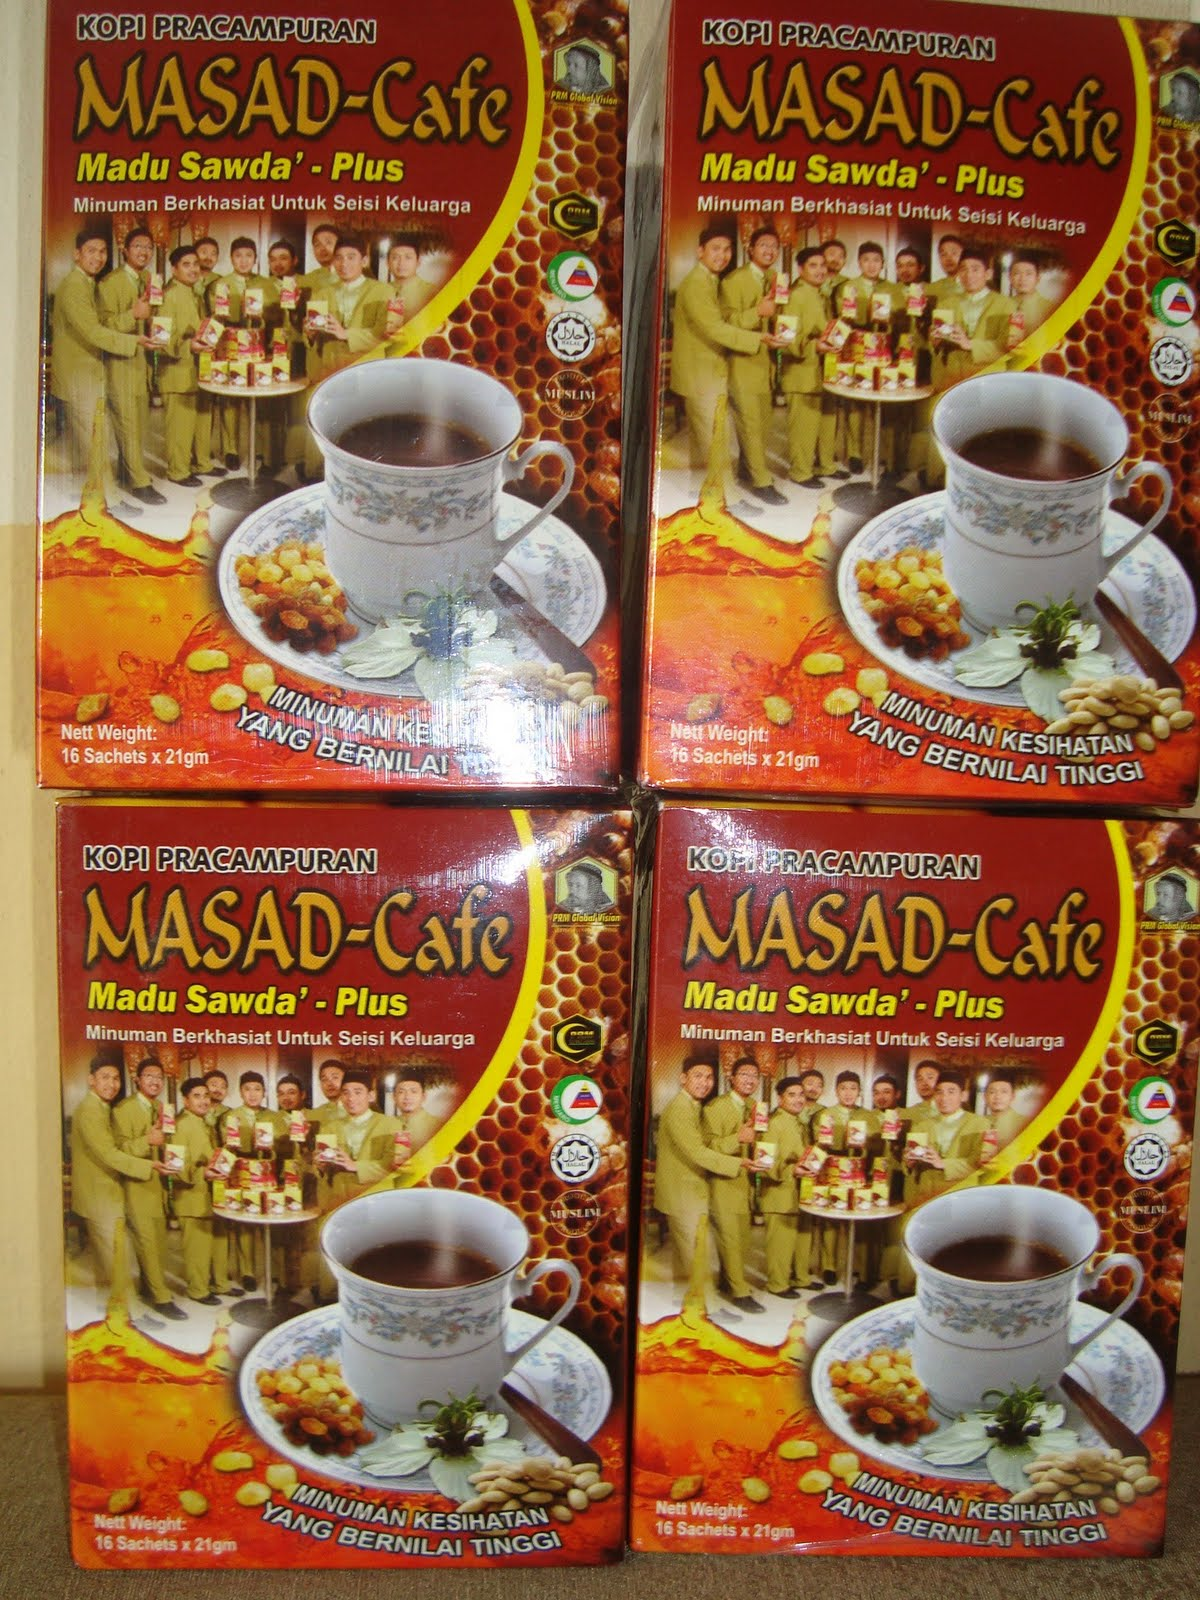 Calendar May Sia : Masad cafe